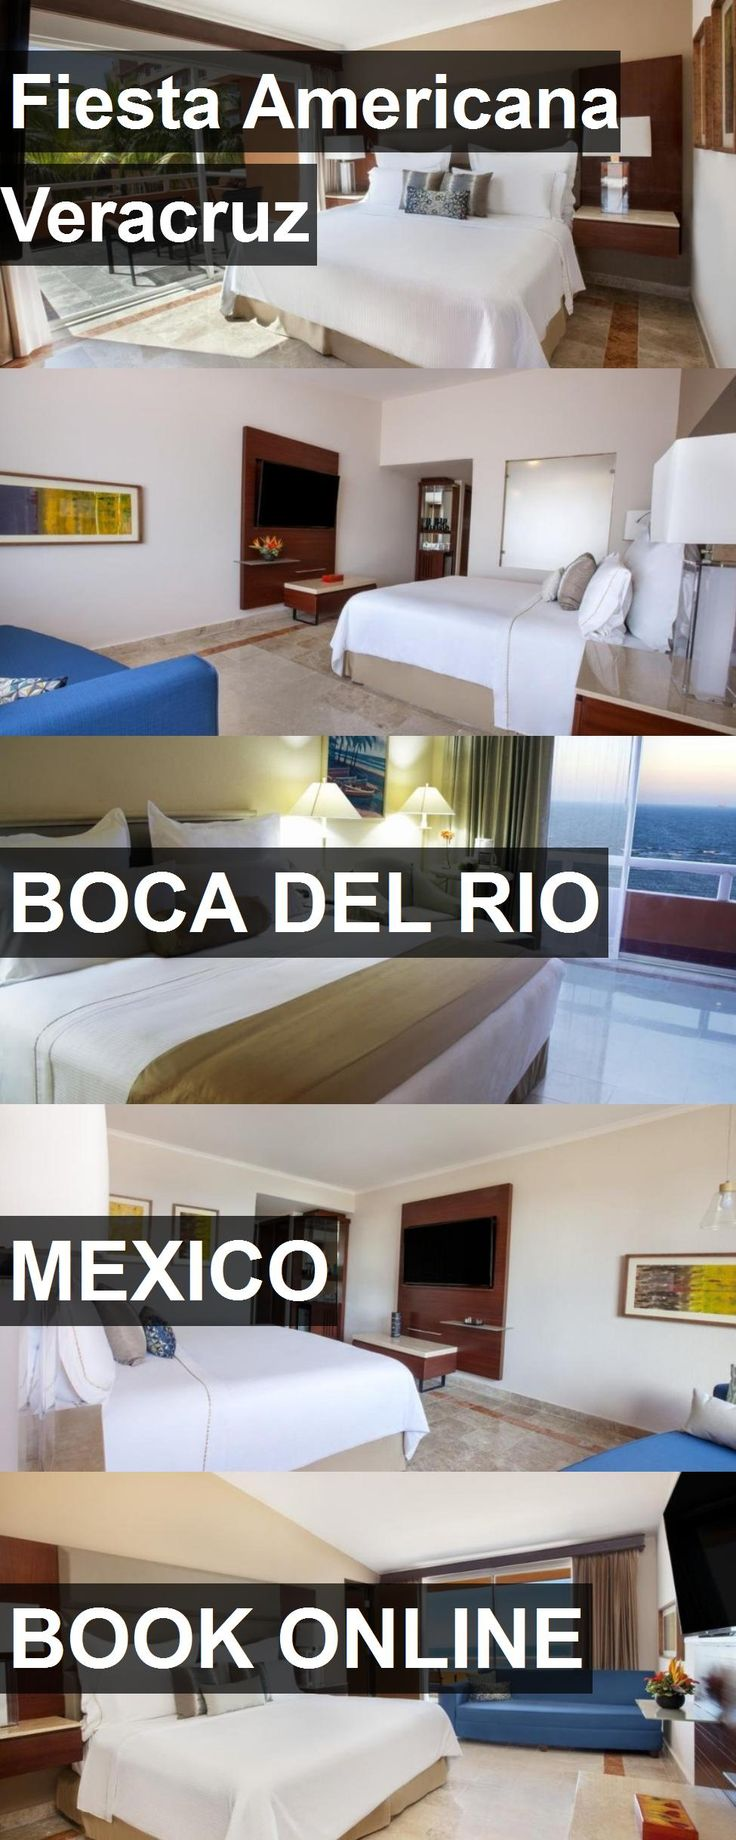 Hotel Fiesta Americana Veracruz in Boca Del Rio, Mexico. For more information, photos, reviews and best prices please follow the link. #Mexico #BocaDelRio #travel #vacation #hotel